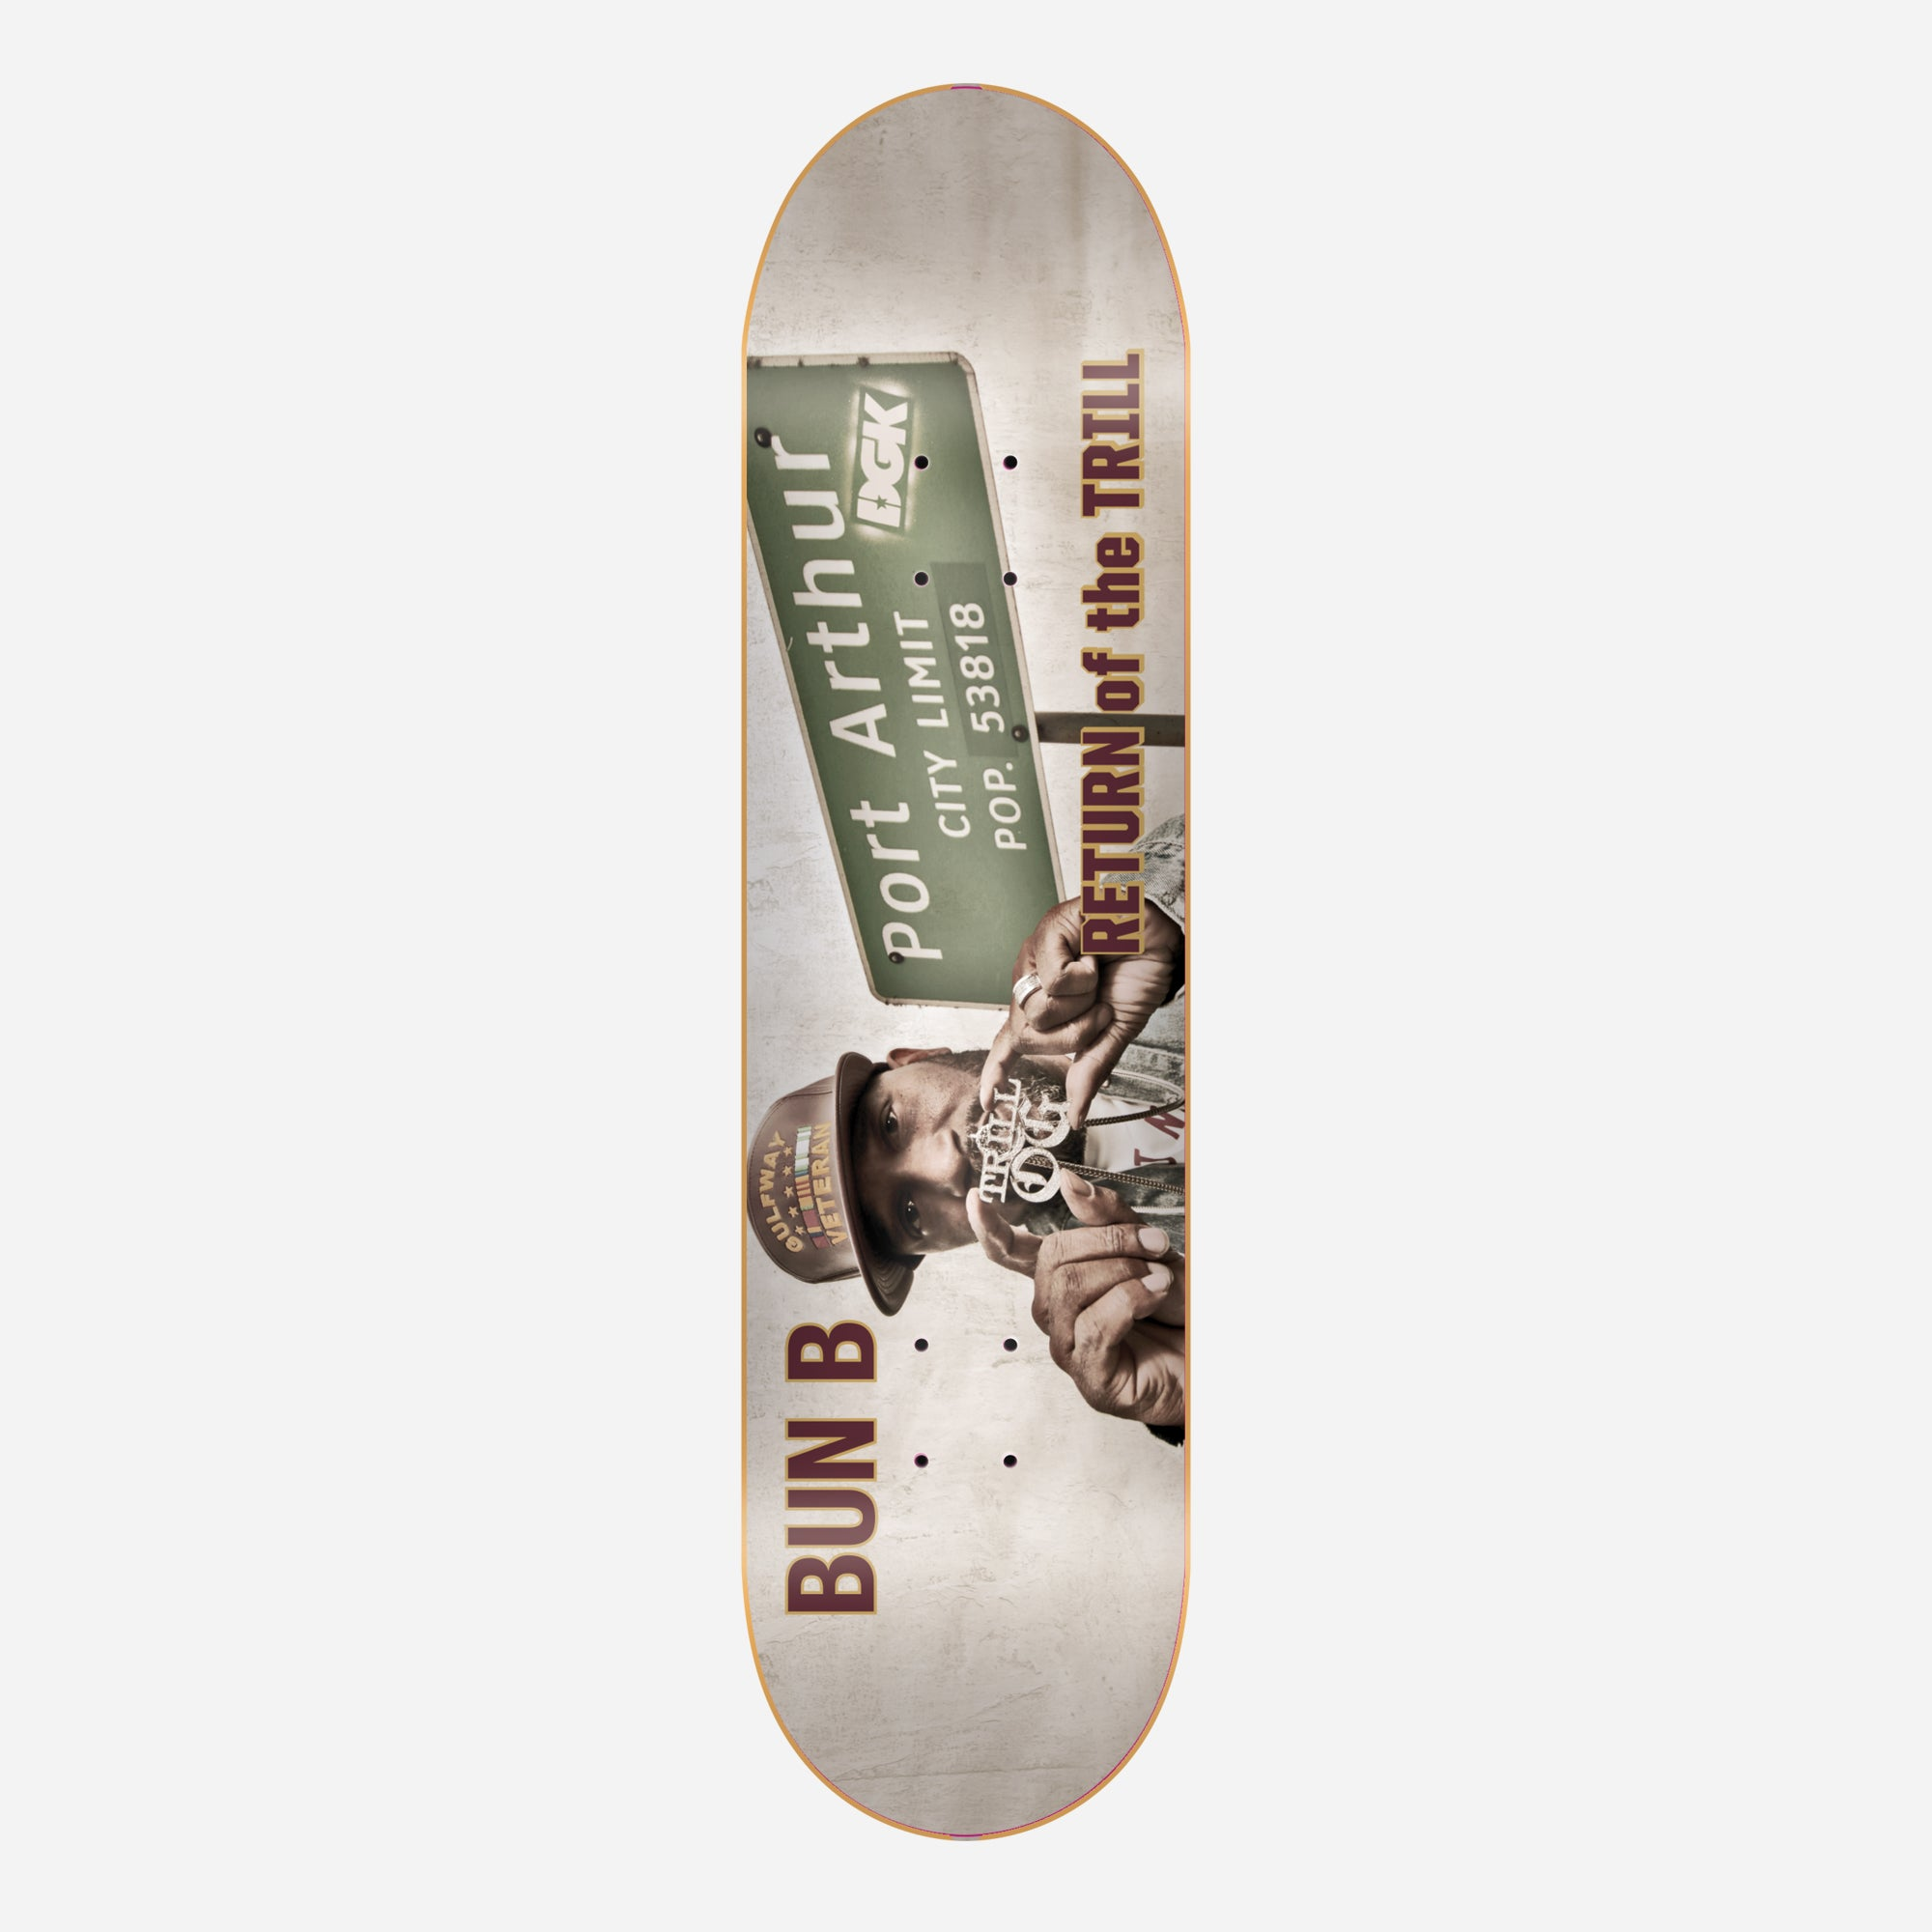 DGK Bun B x DGK Return of the Trill Skateboard Deck